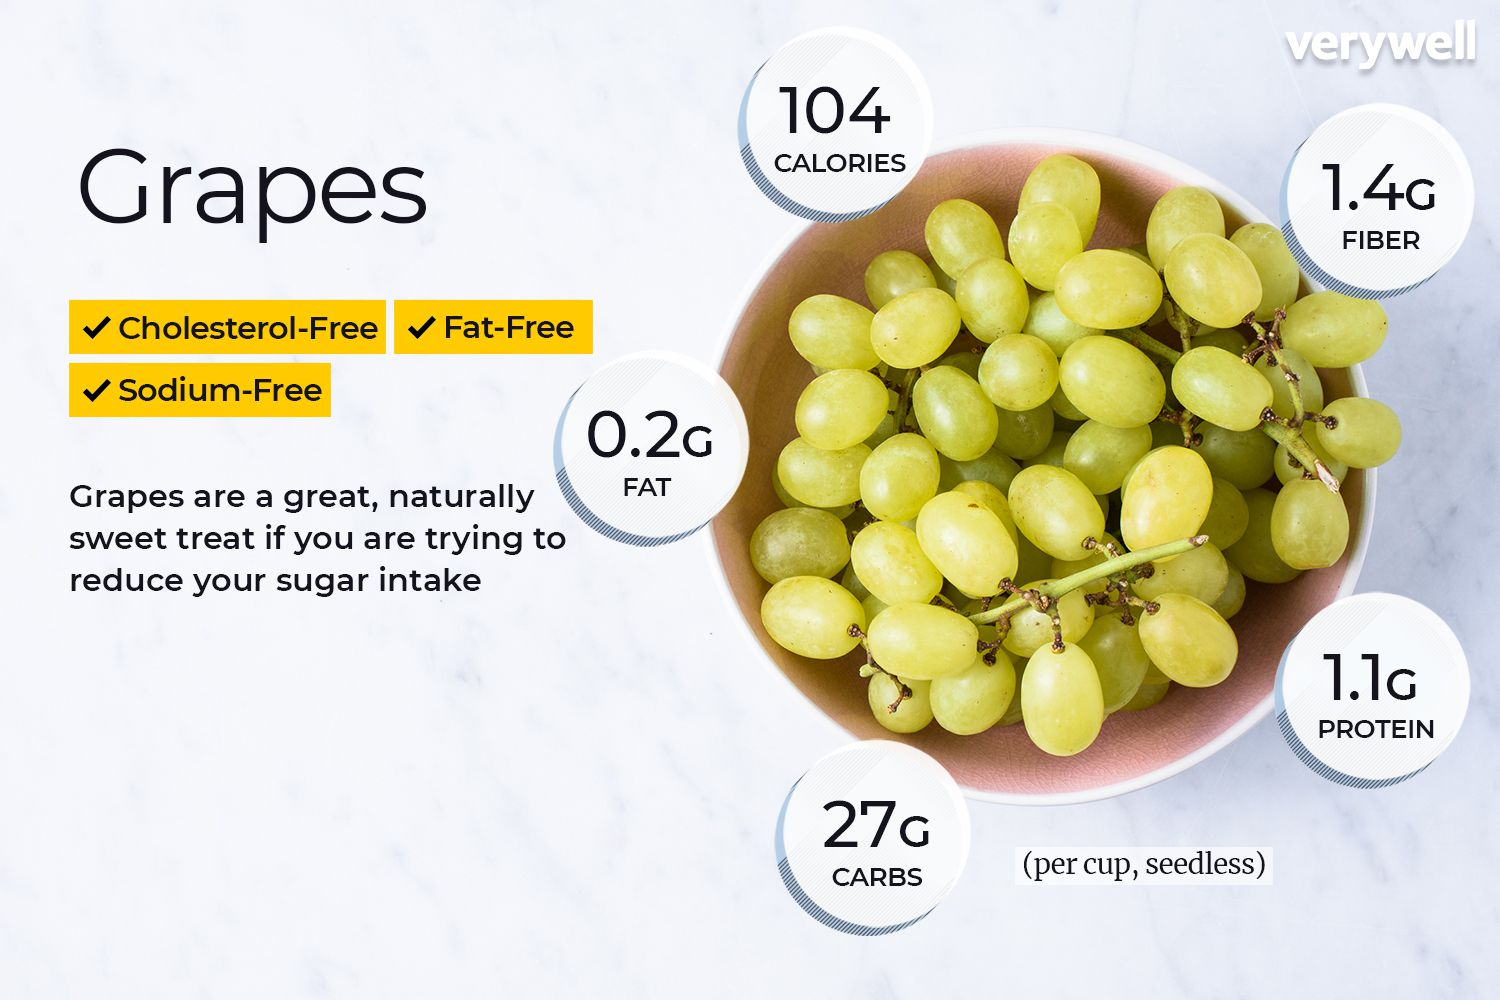 are grapes good for you